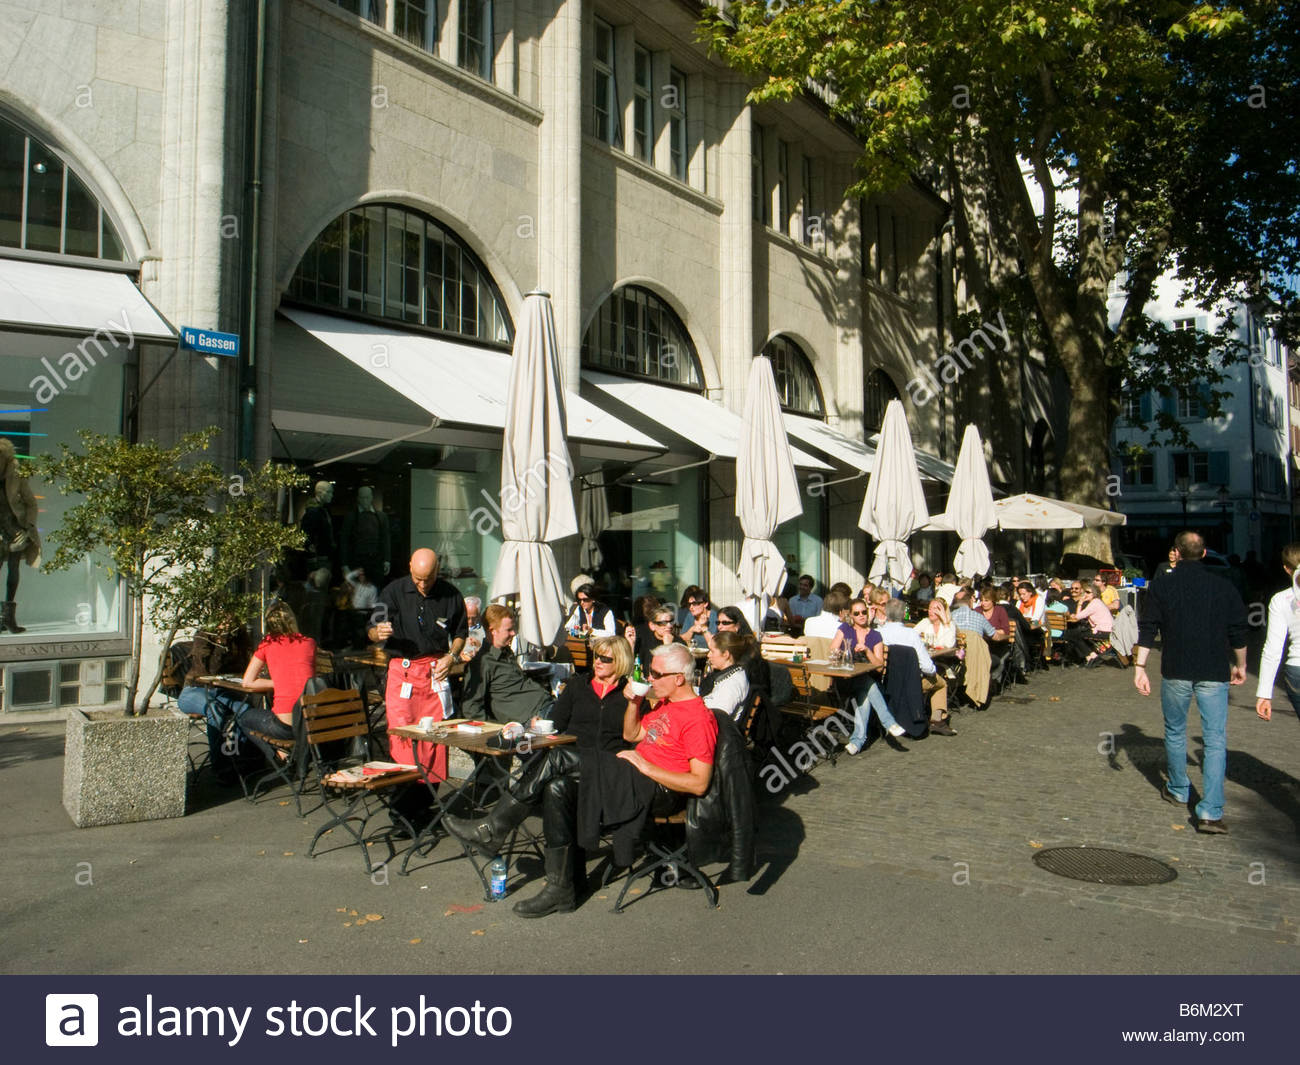 People at oudoor cafe in Zurich Switzerland - Stock Image